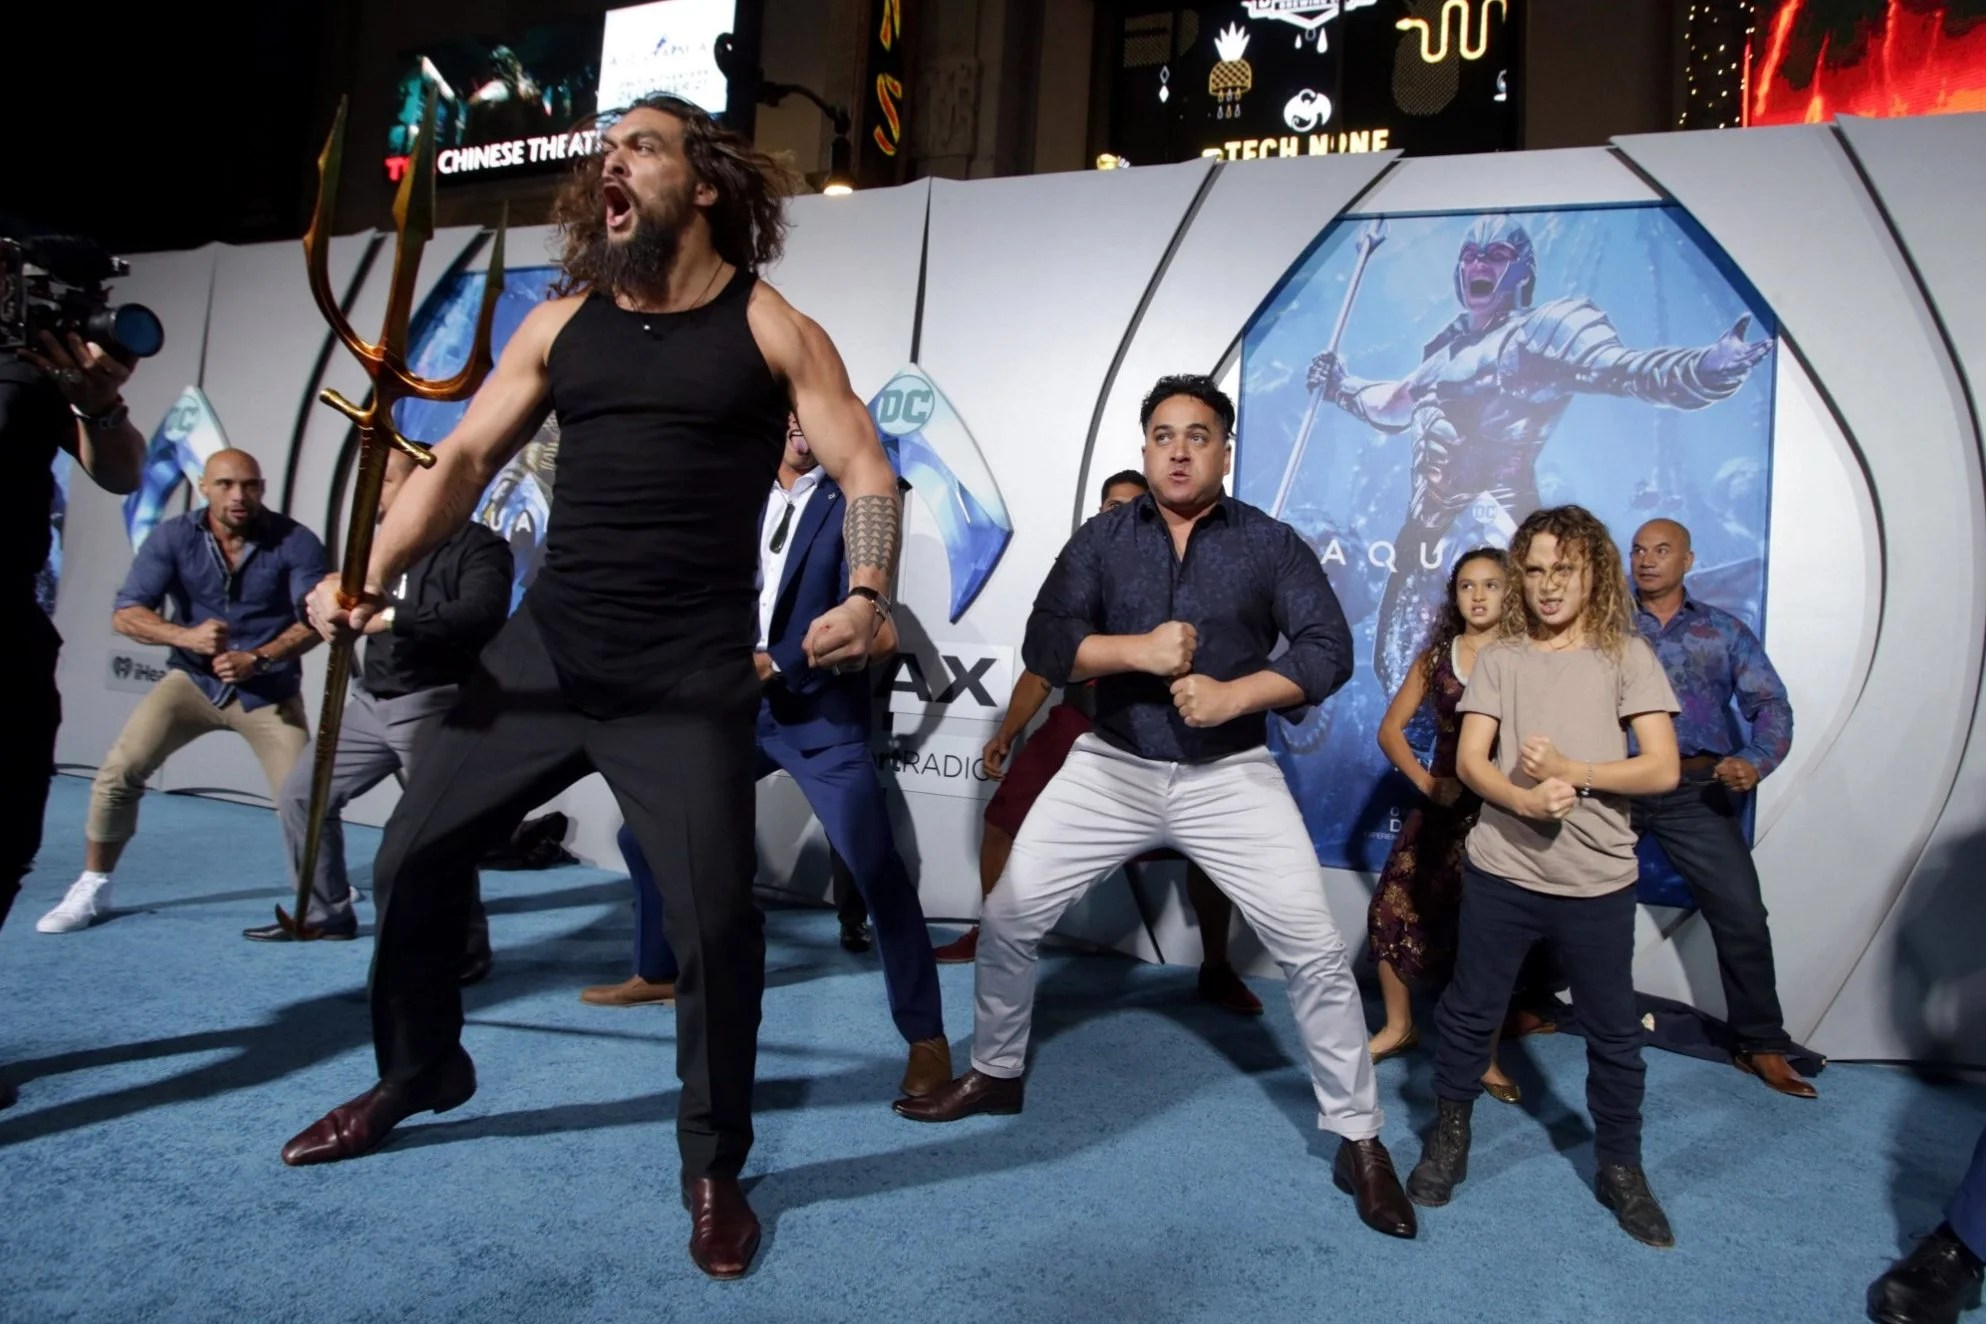 Chinese Girl Art Wallpaper Jason Momoa Upstaged By His Children As He Leads Haka At